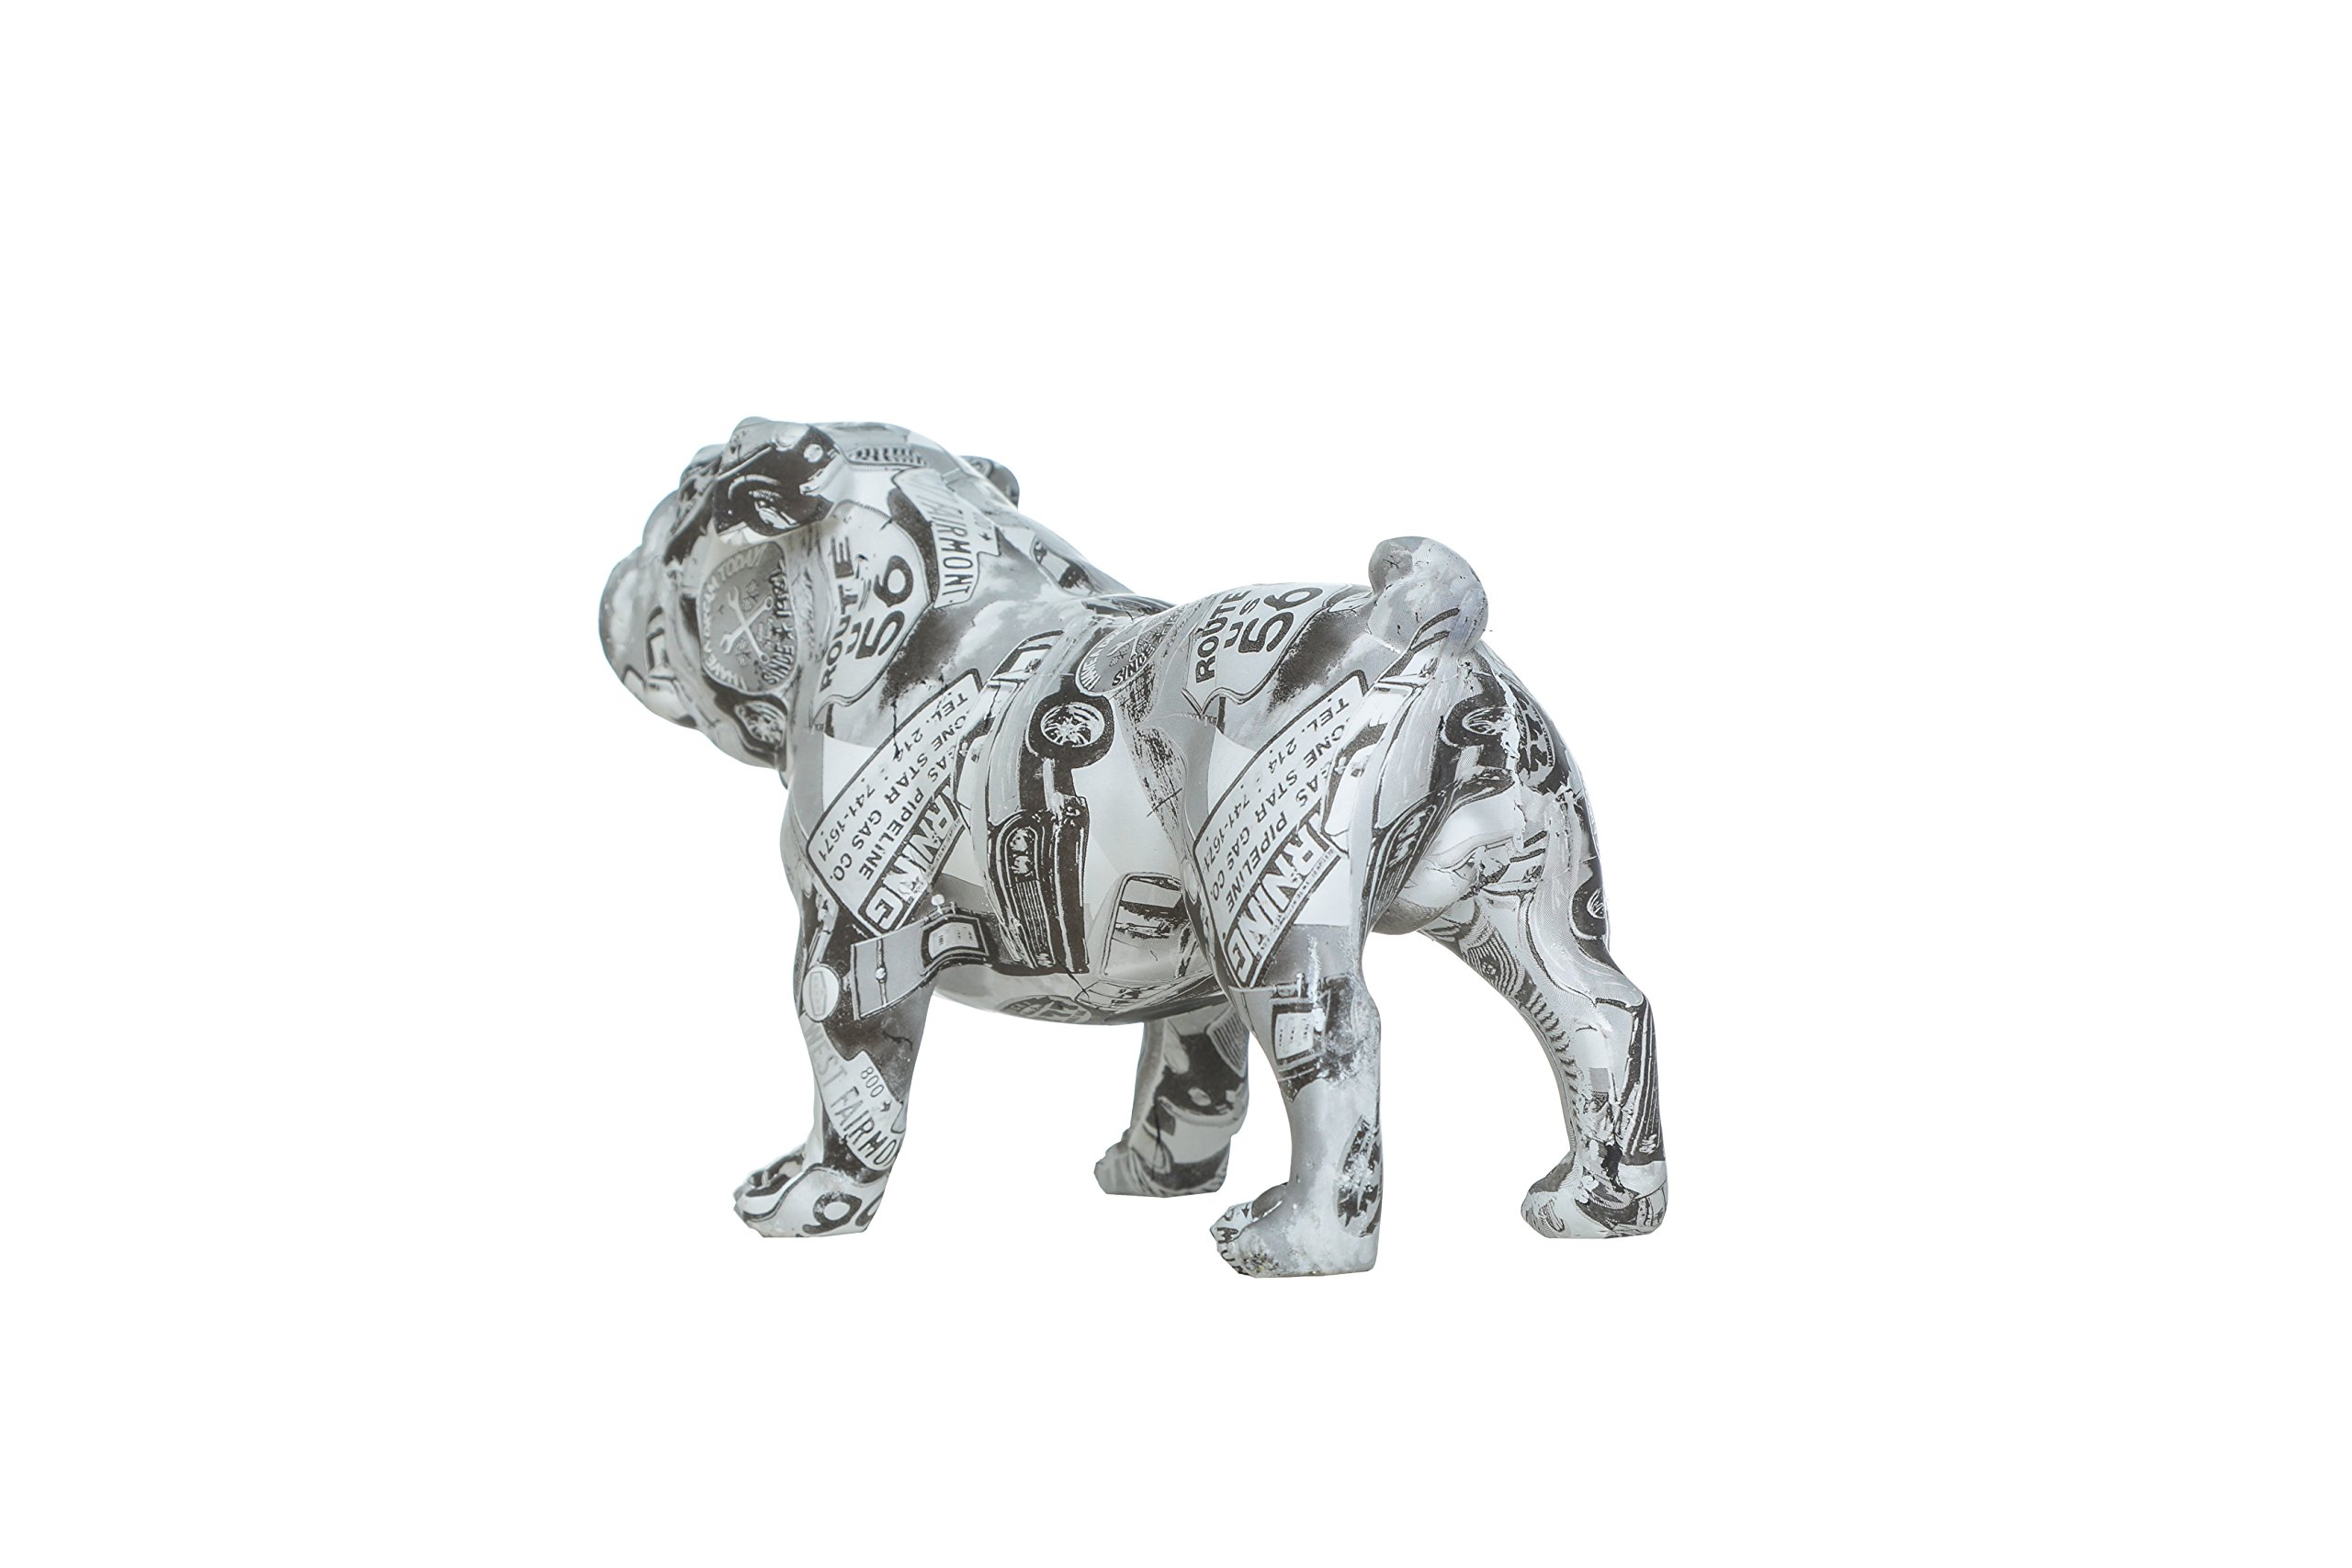 Interior Illusions Plus ii00411 Piggy, Coin Bank, Home Décor, Black/White/Gold by Interior Illusions Plus (Image #2)